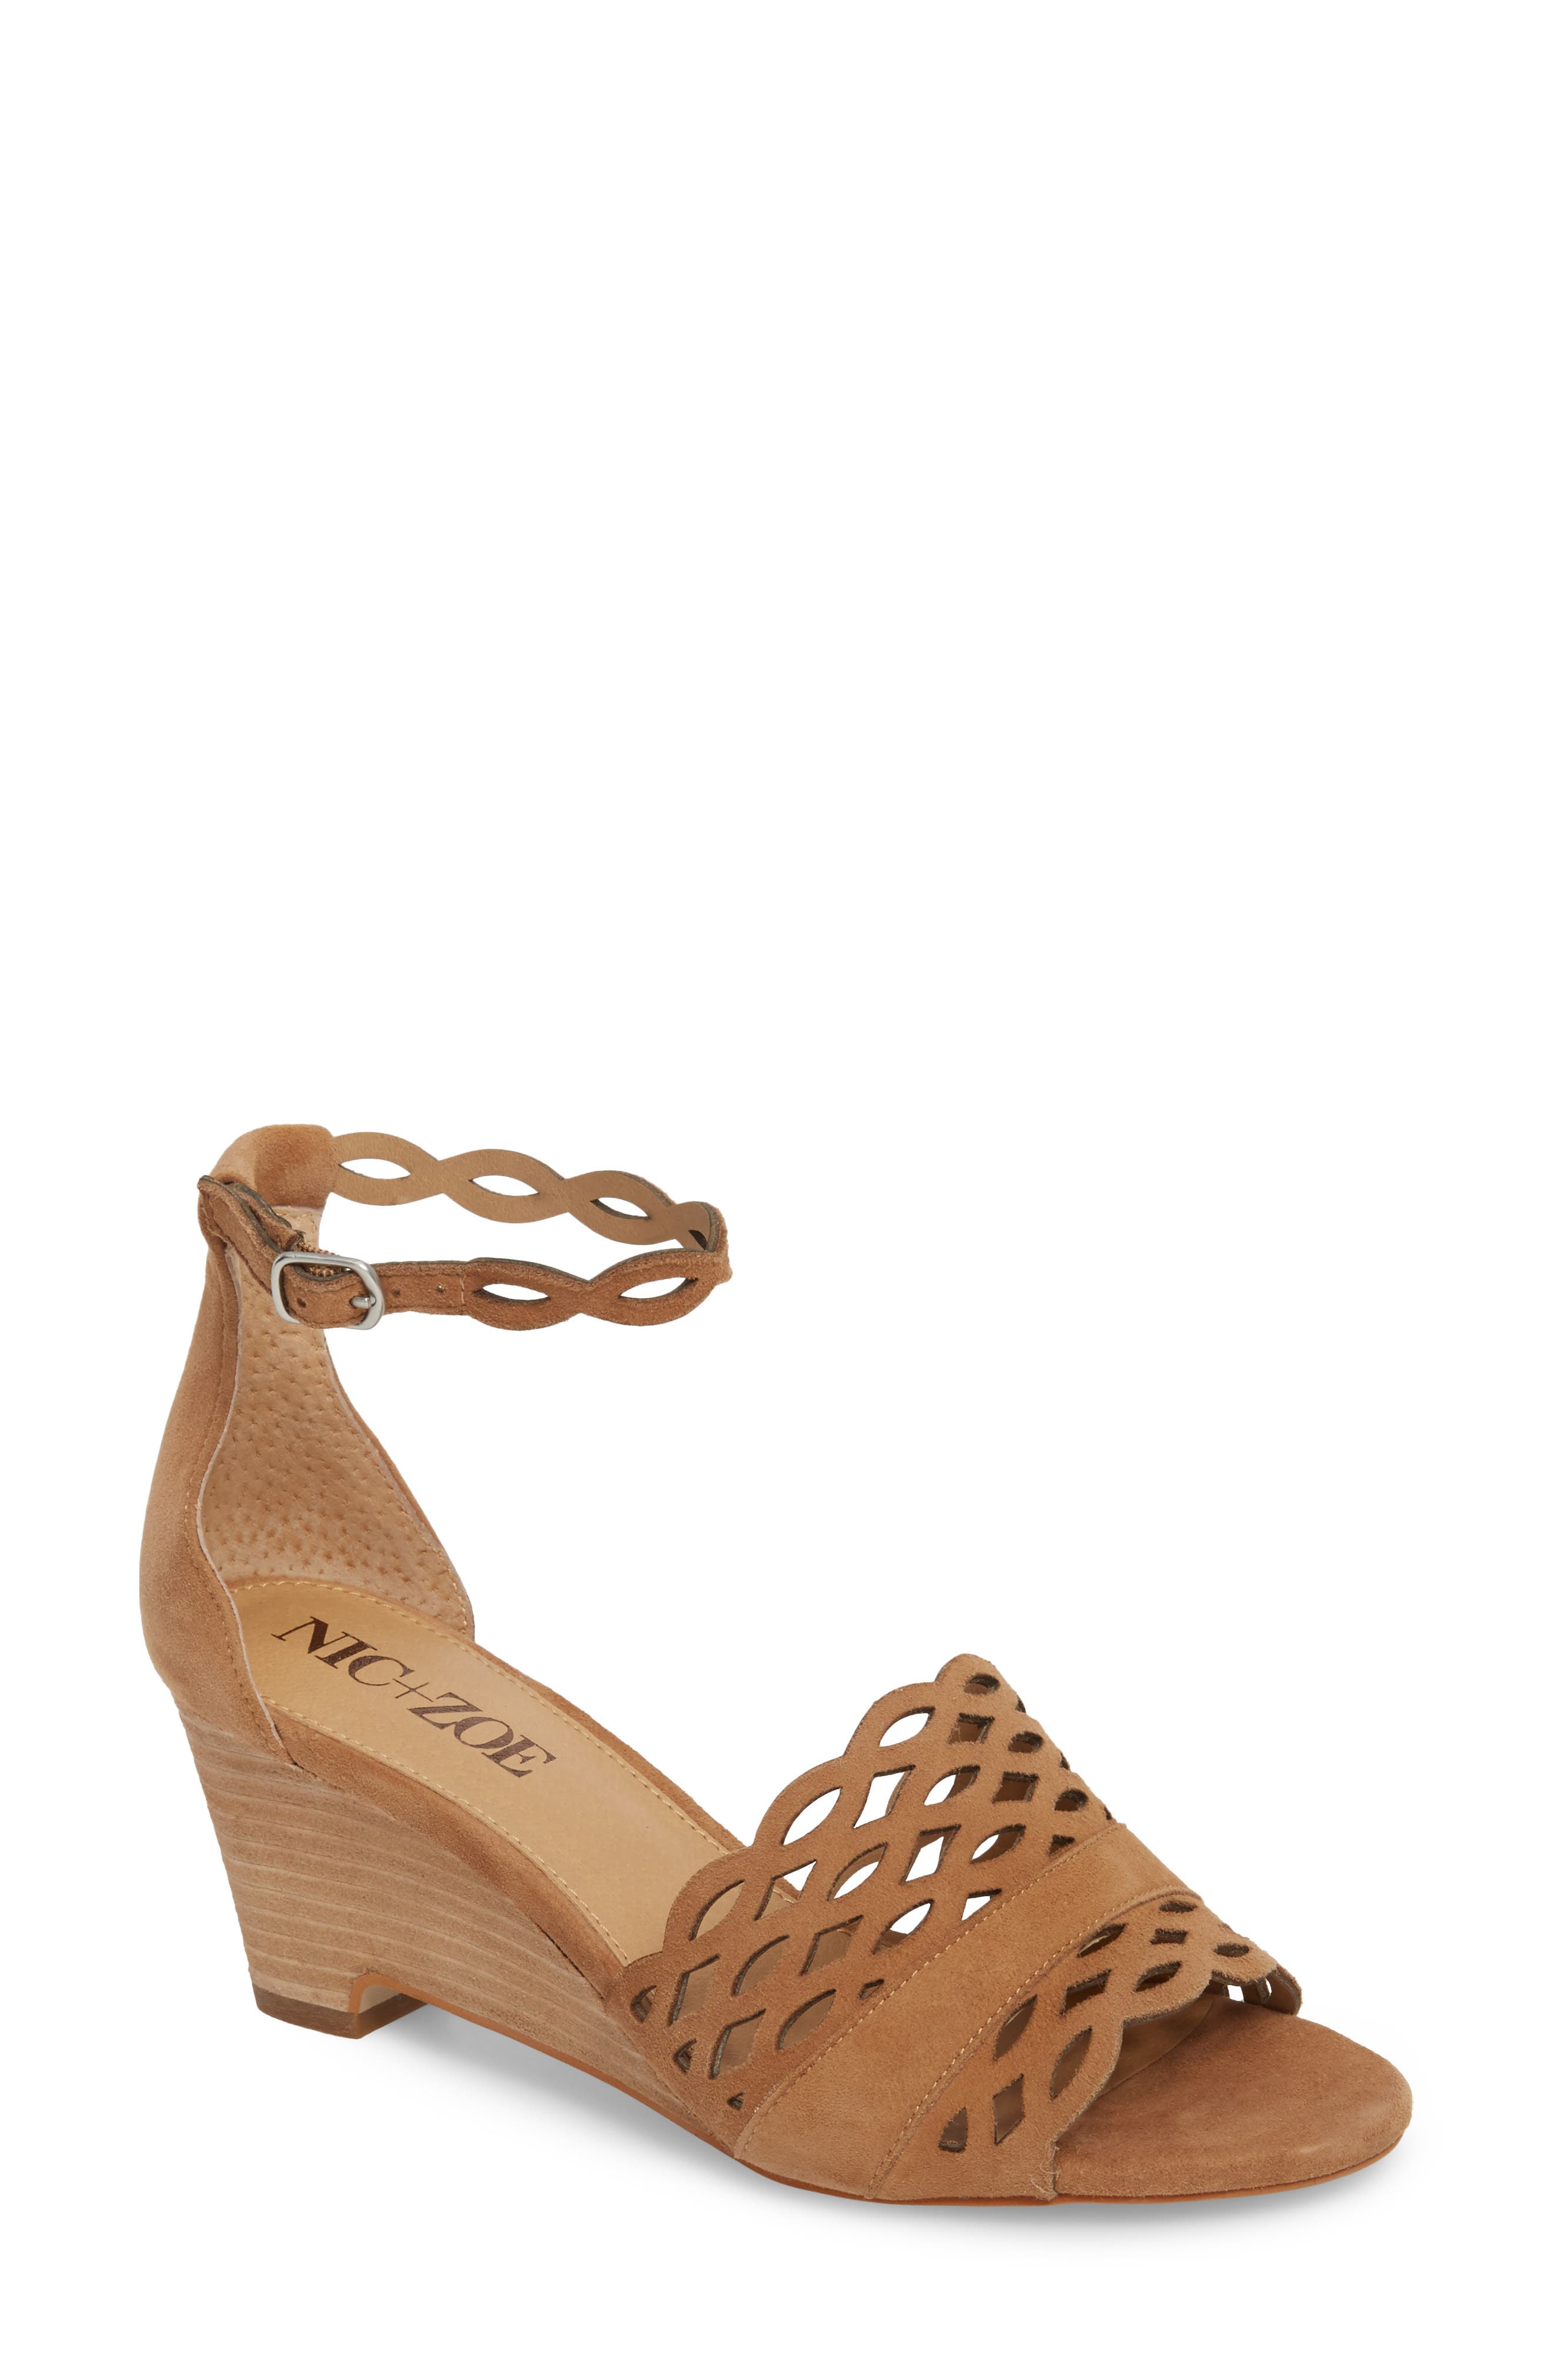 Flora Wedge Sandal,                         Main,                         color, Fawn Leather